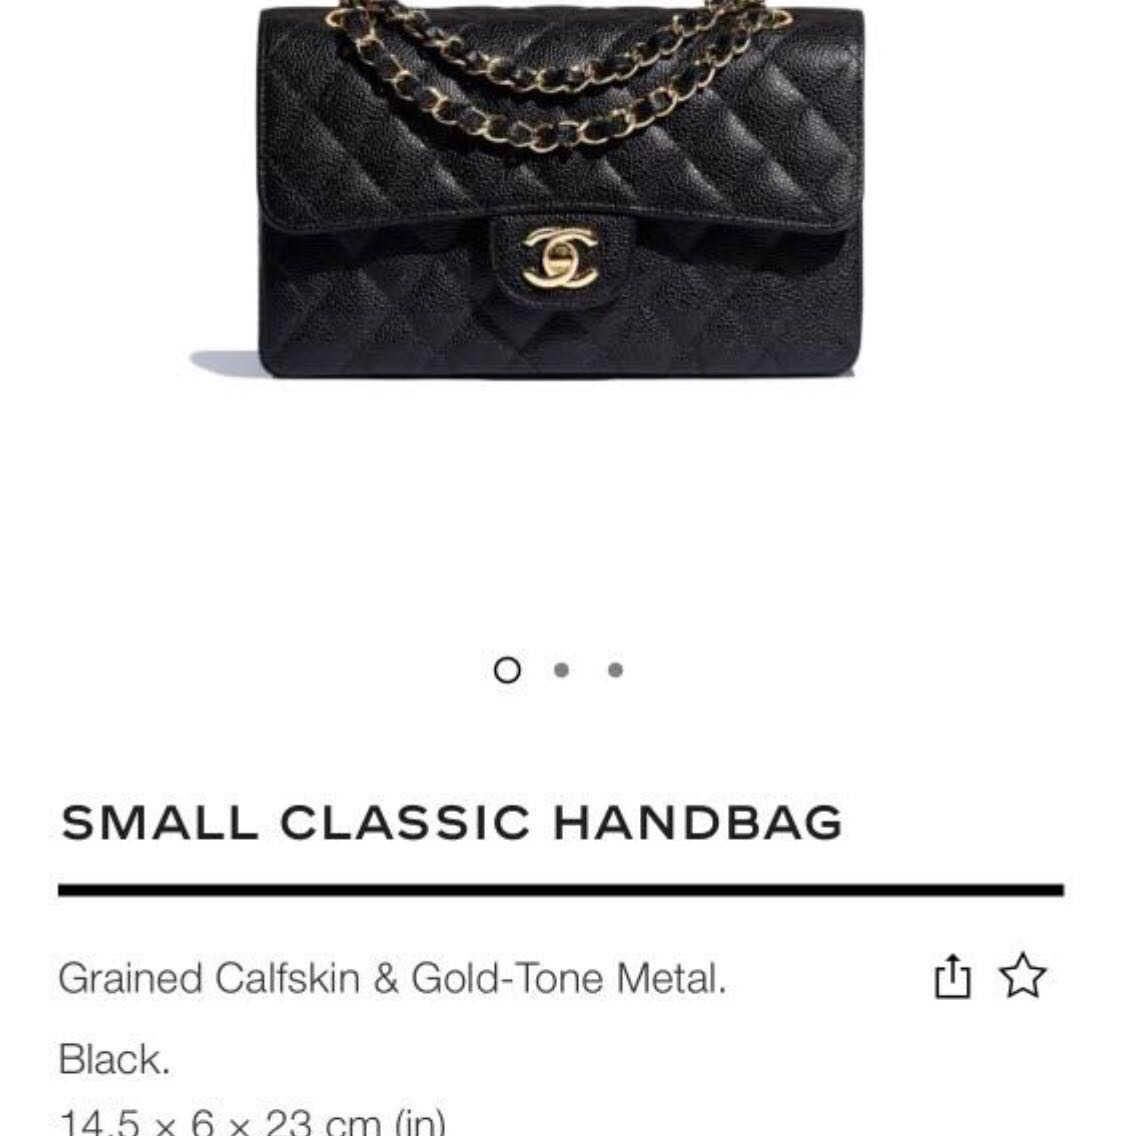 485932e4de3be4 Authentic Chanel small classic handbag, Luxury, Bags & Wallets ...